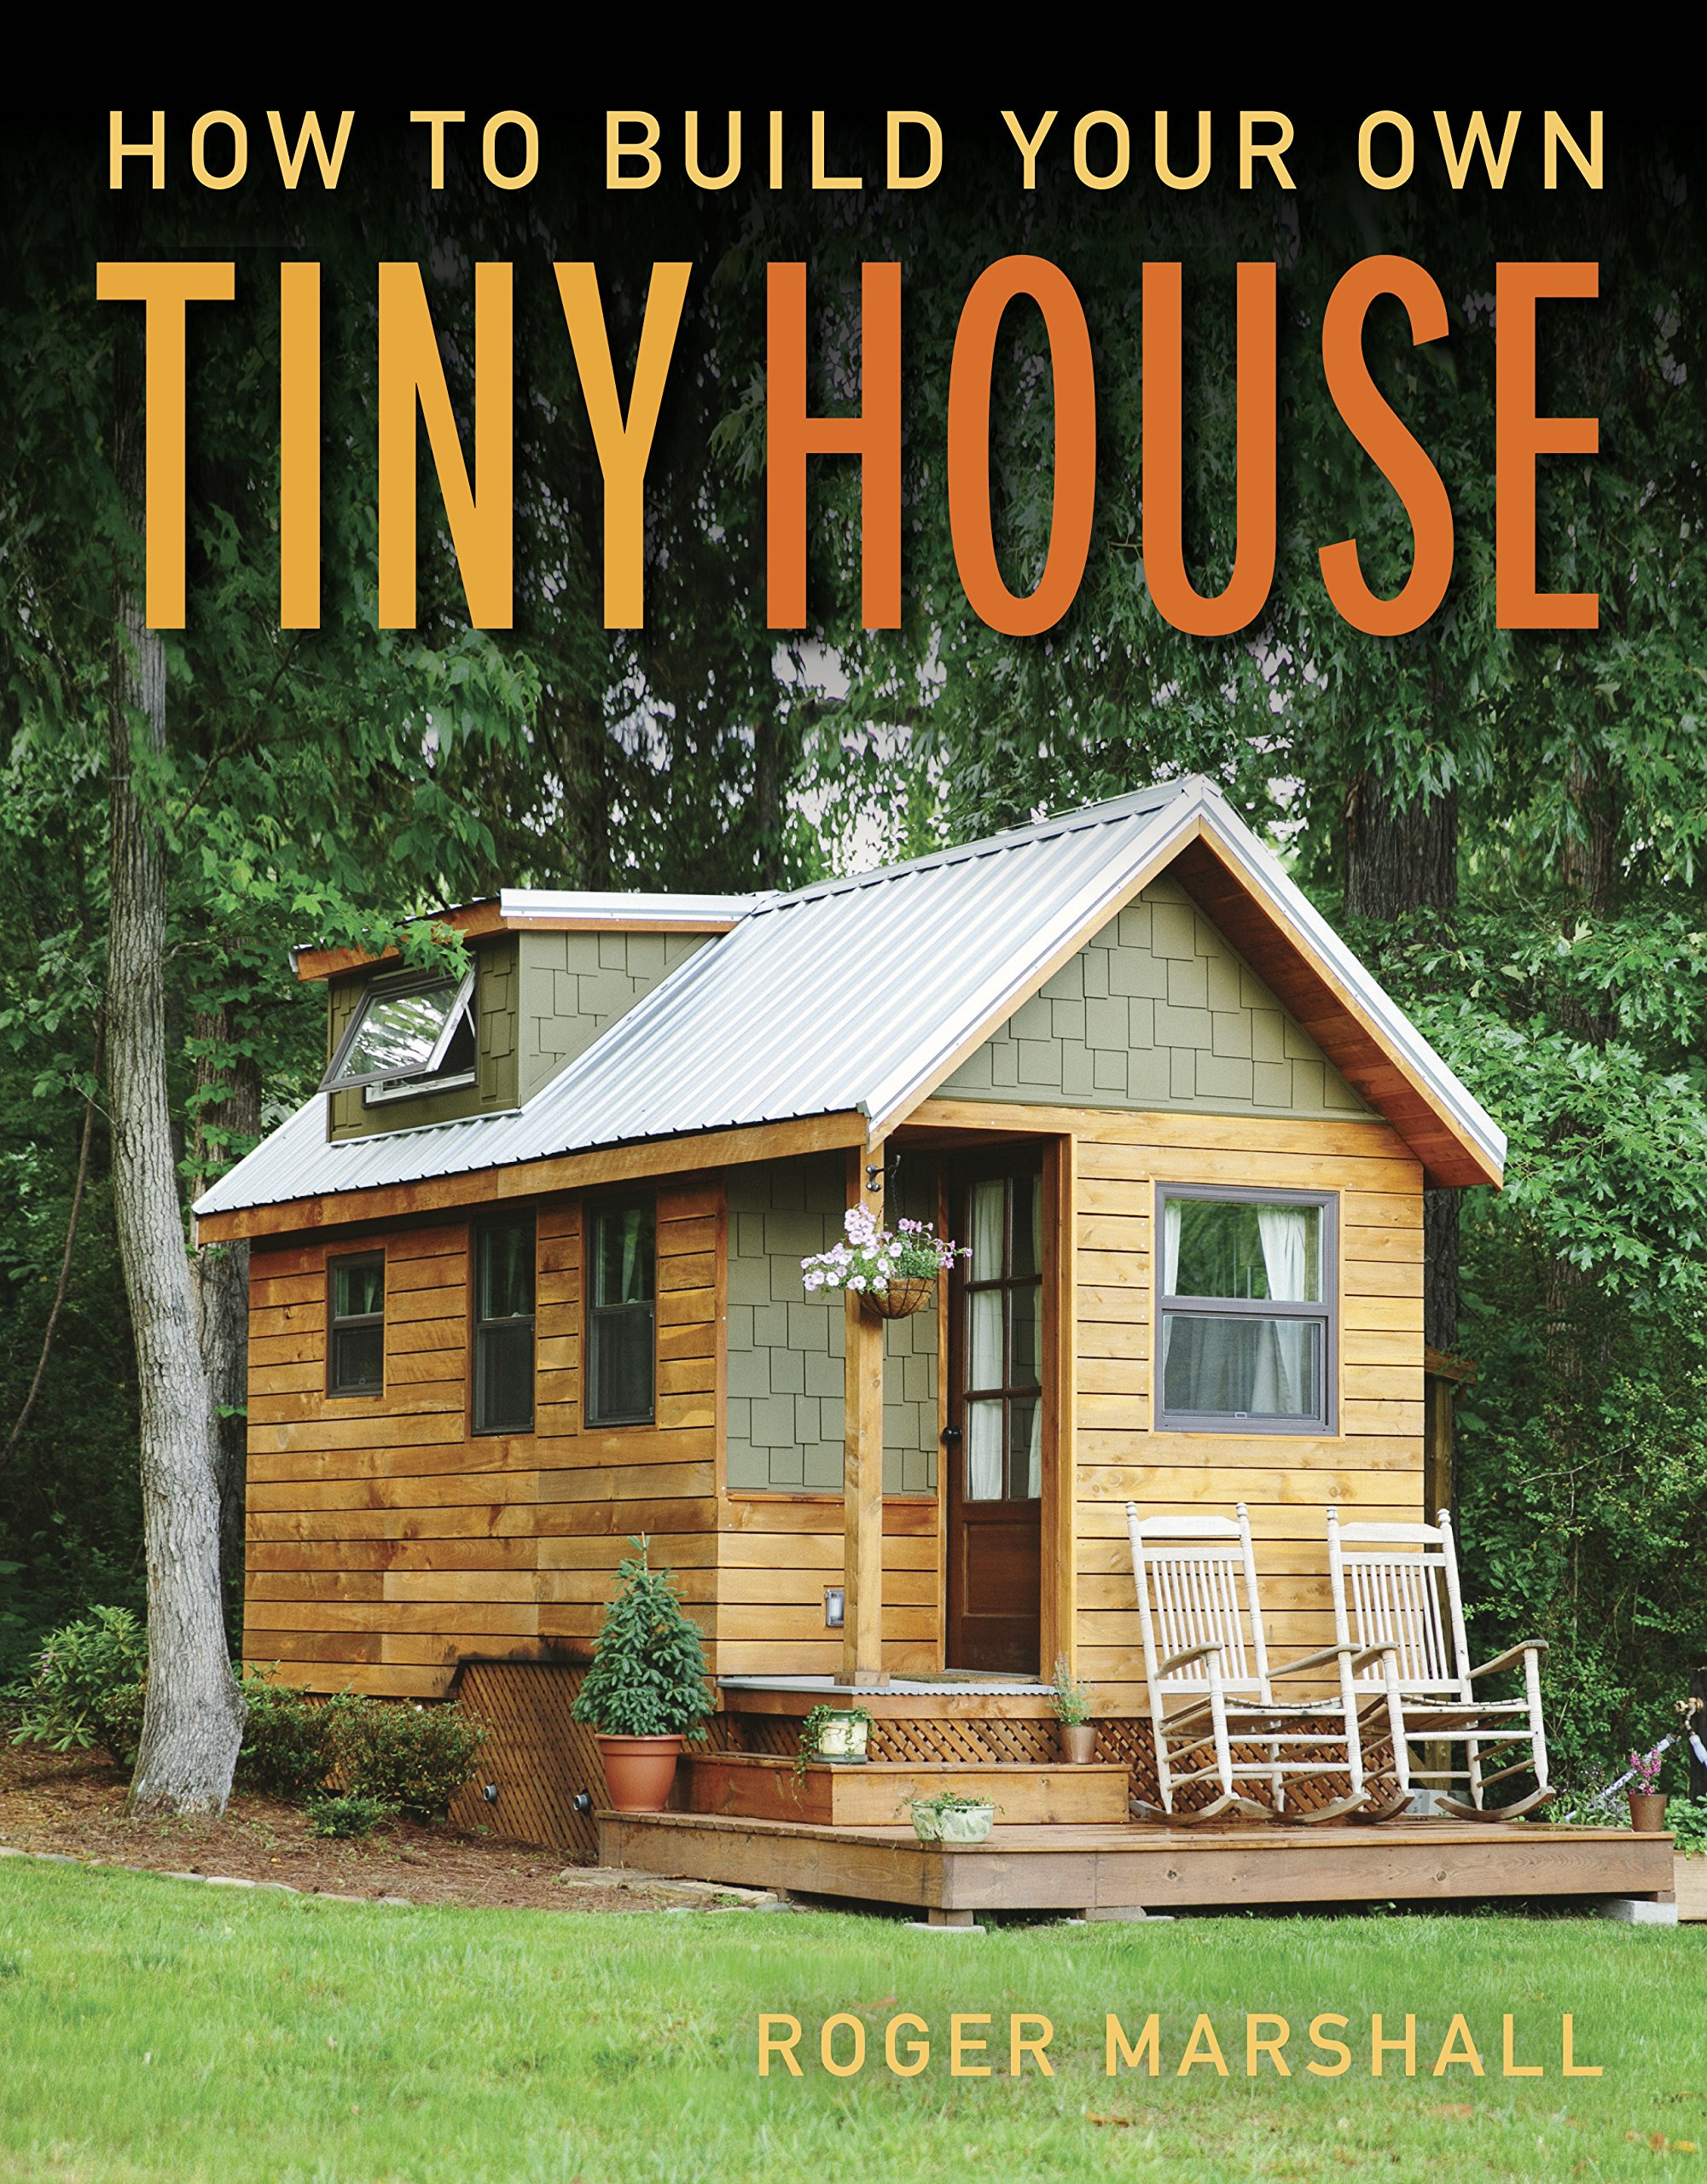 Build Your Own Small House Fresh How to Build Your Own Tiny House Amazon Roger Marshall